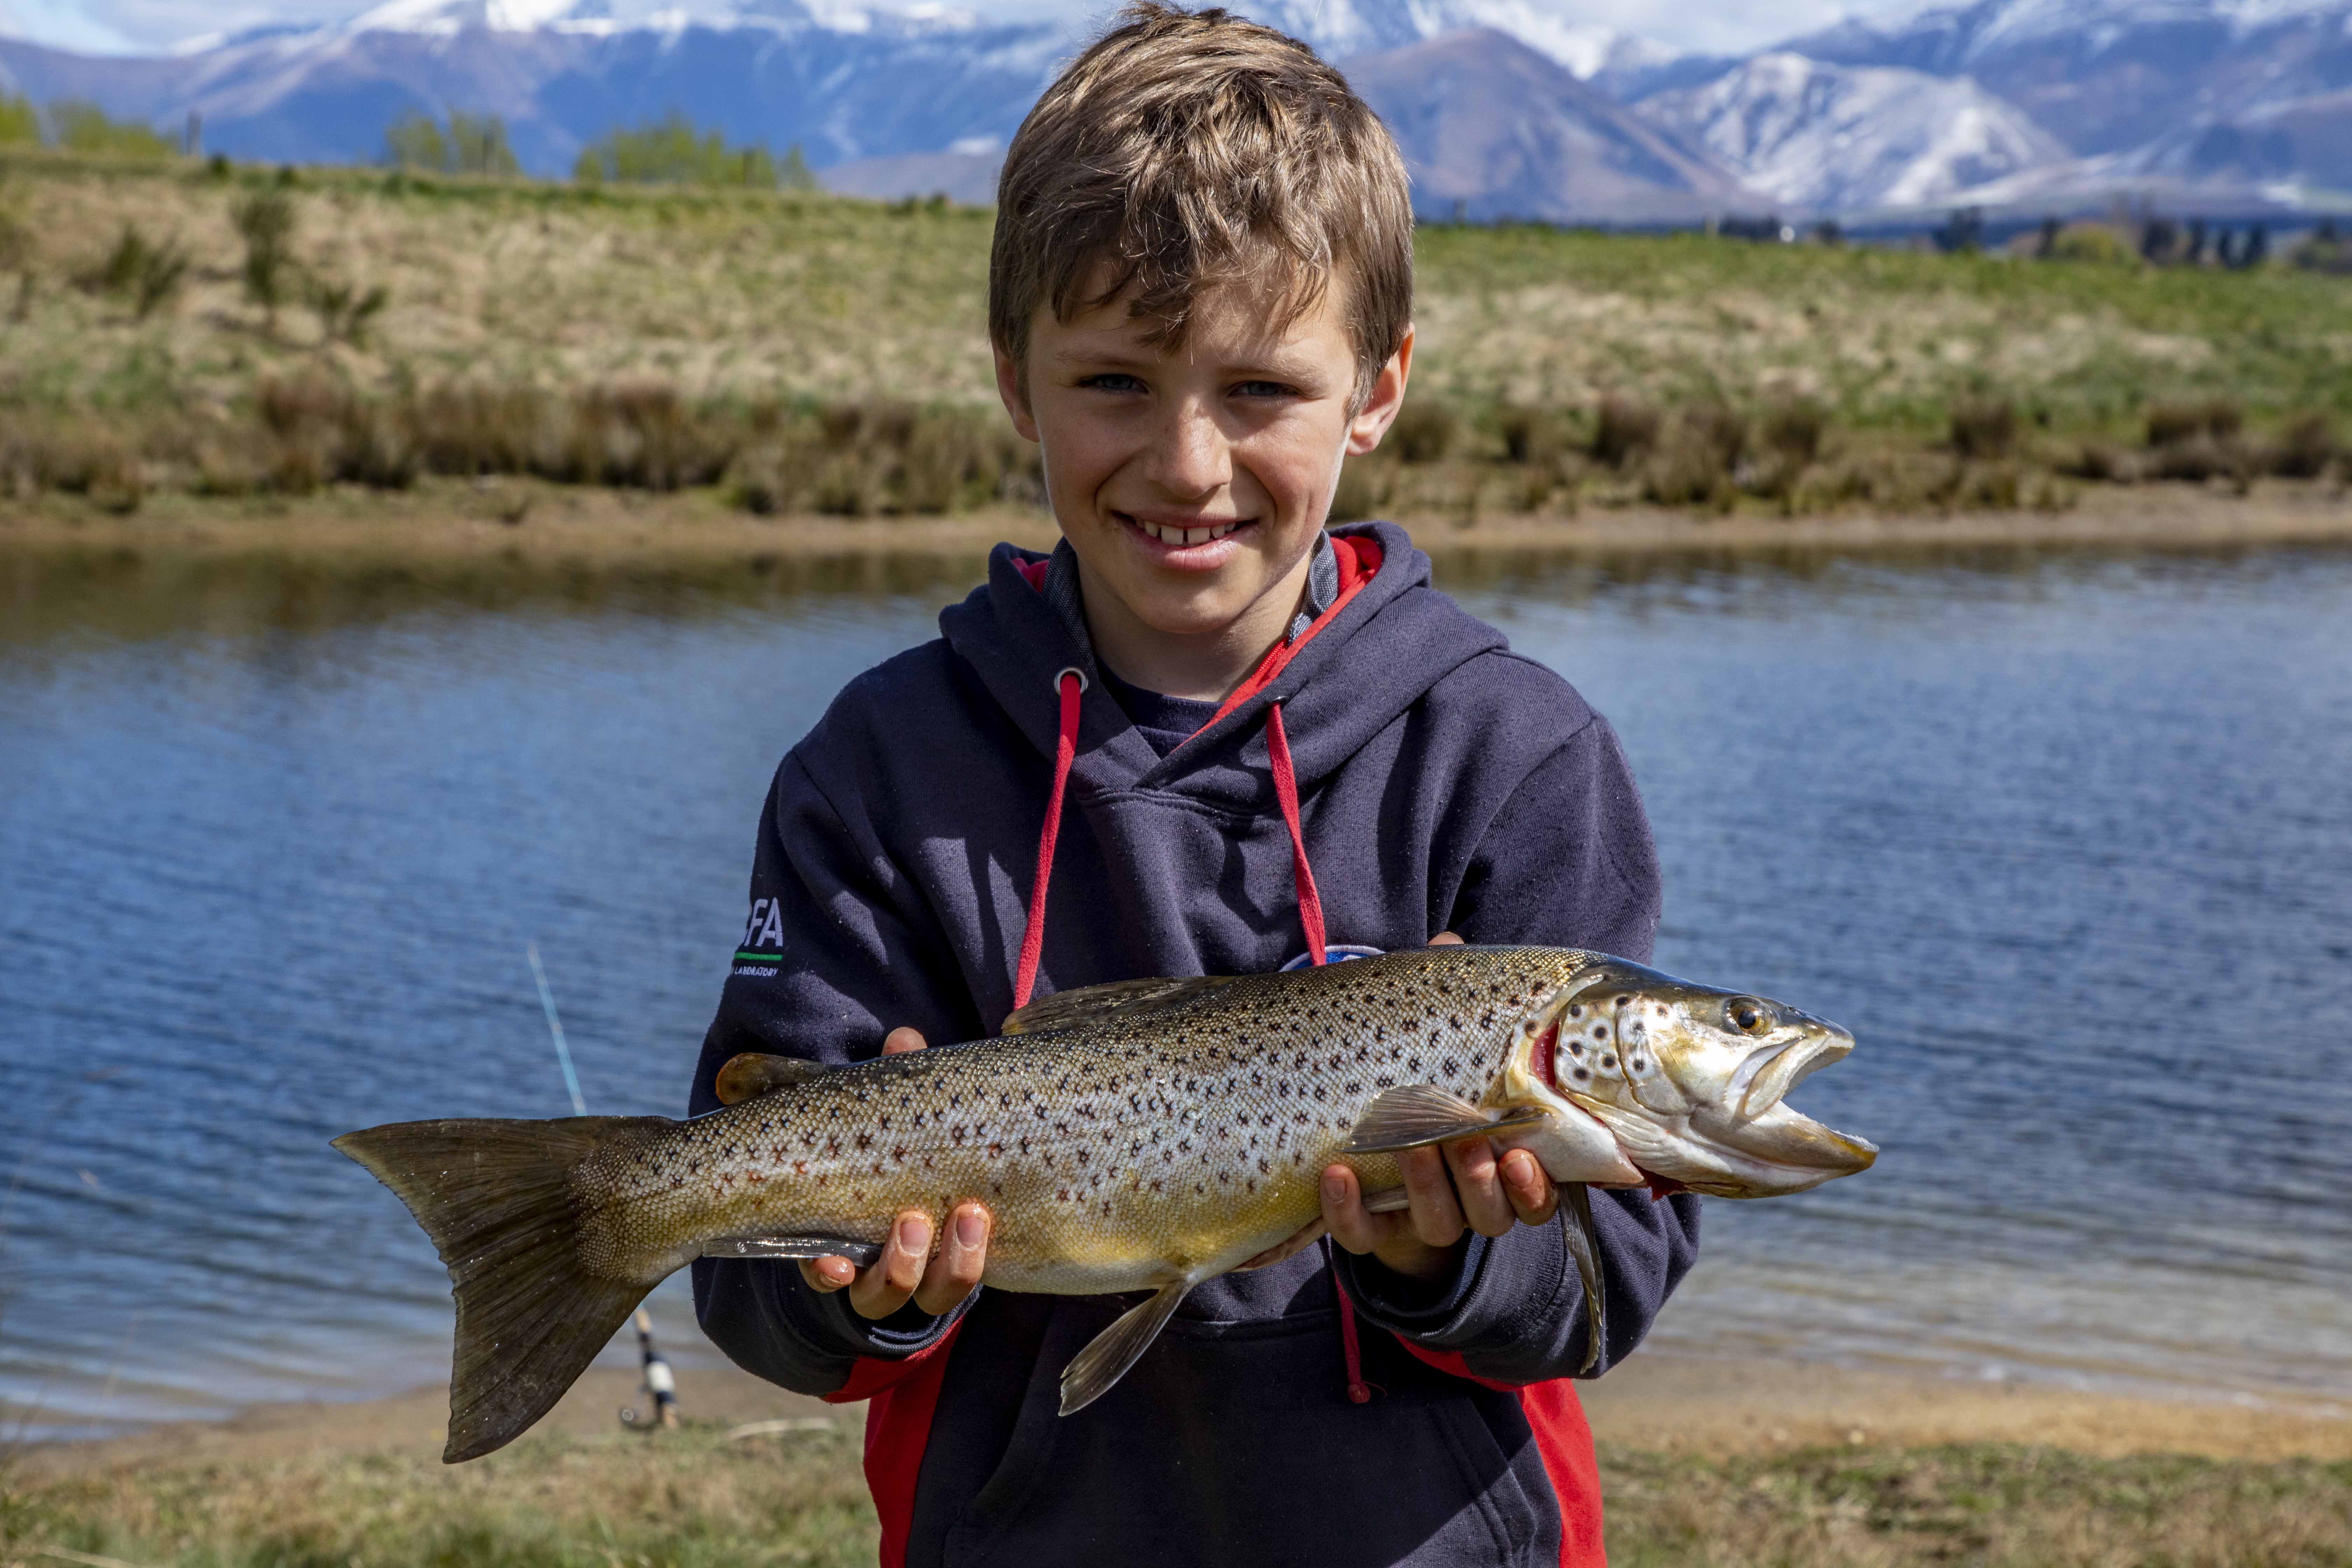 FGNZ7385a Nine year old Blake Marrett had success with wormfishing on Lake Opuha with this lovely brown trout